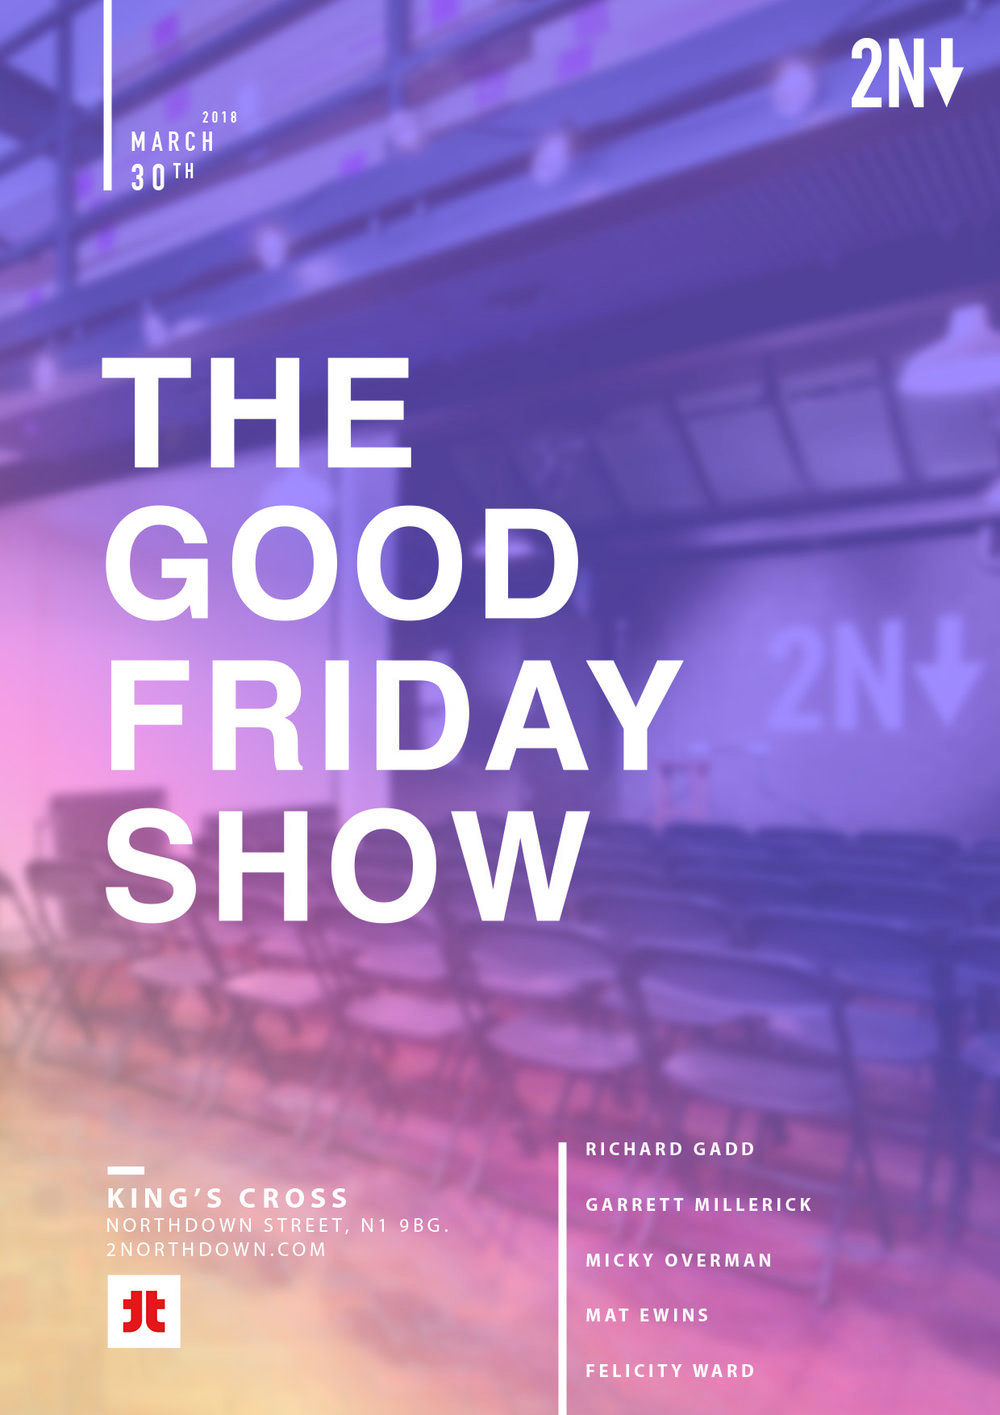 Good Friday Show - Poster 2.jpg